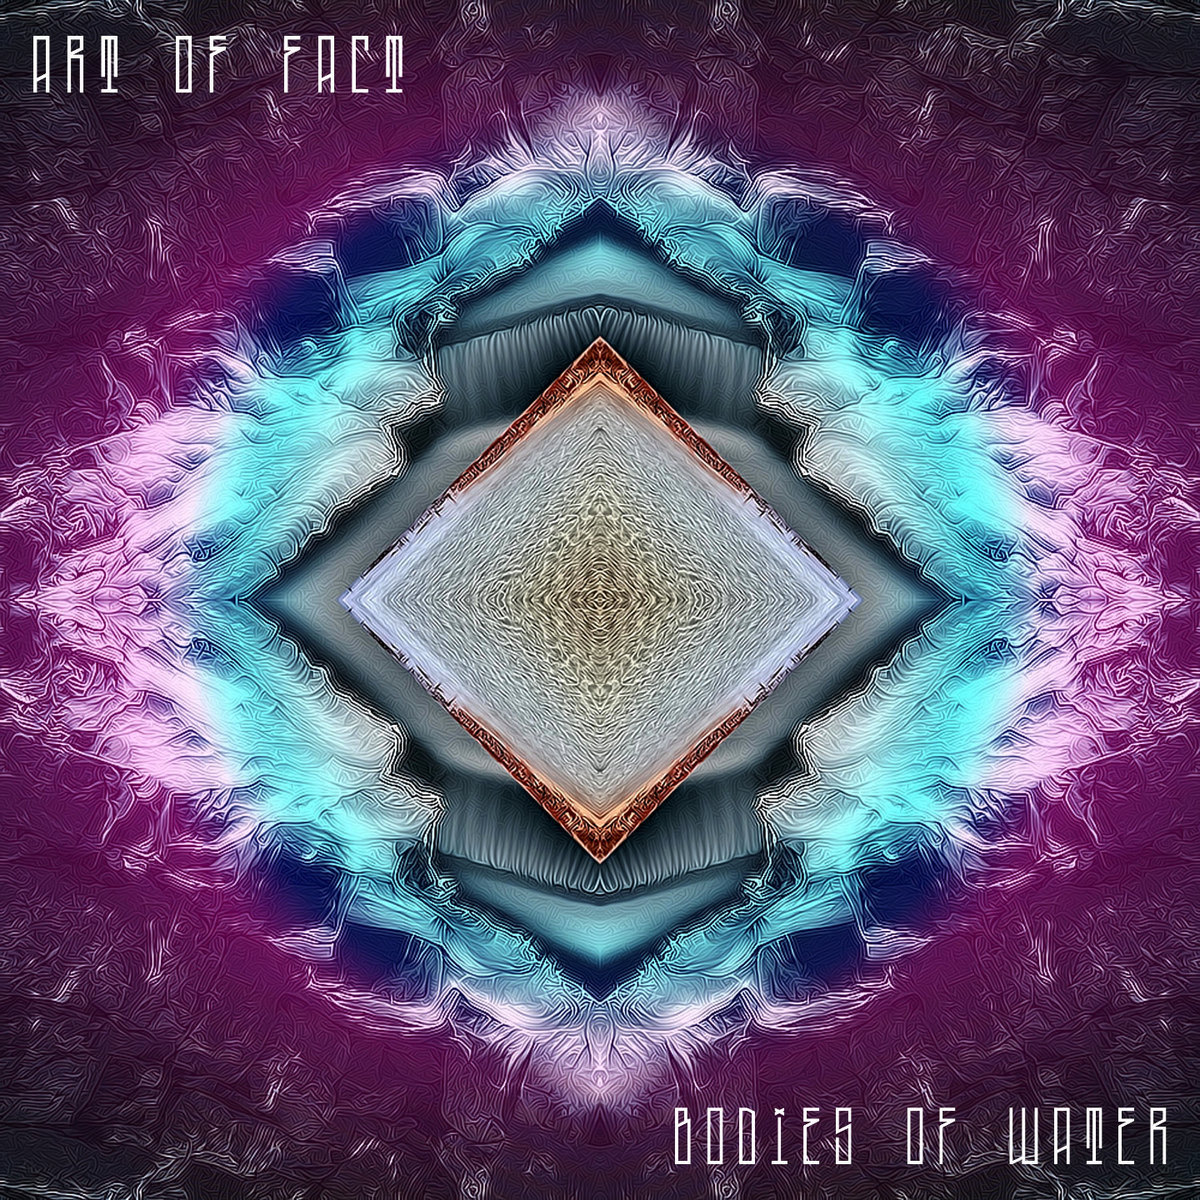 Art of Fact - Velvet Dew Drops (Devin Kroes Remix) @ 'Bodies of Water' album (electronic, dubstep)